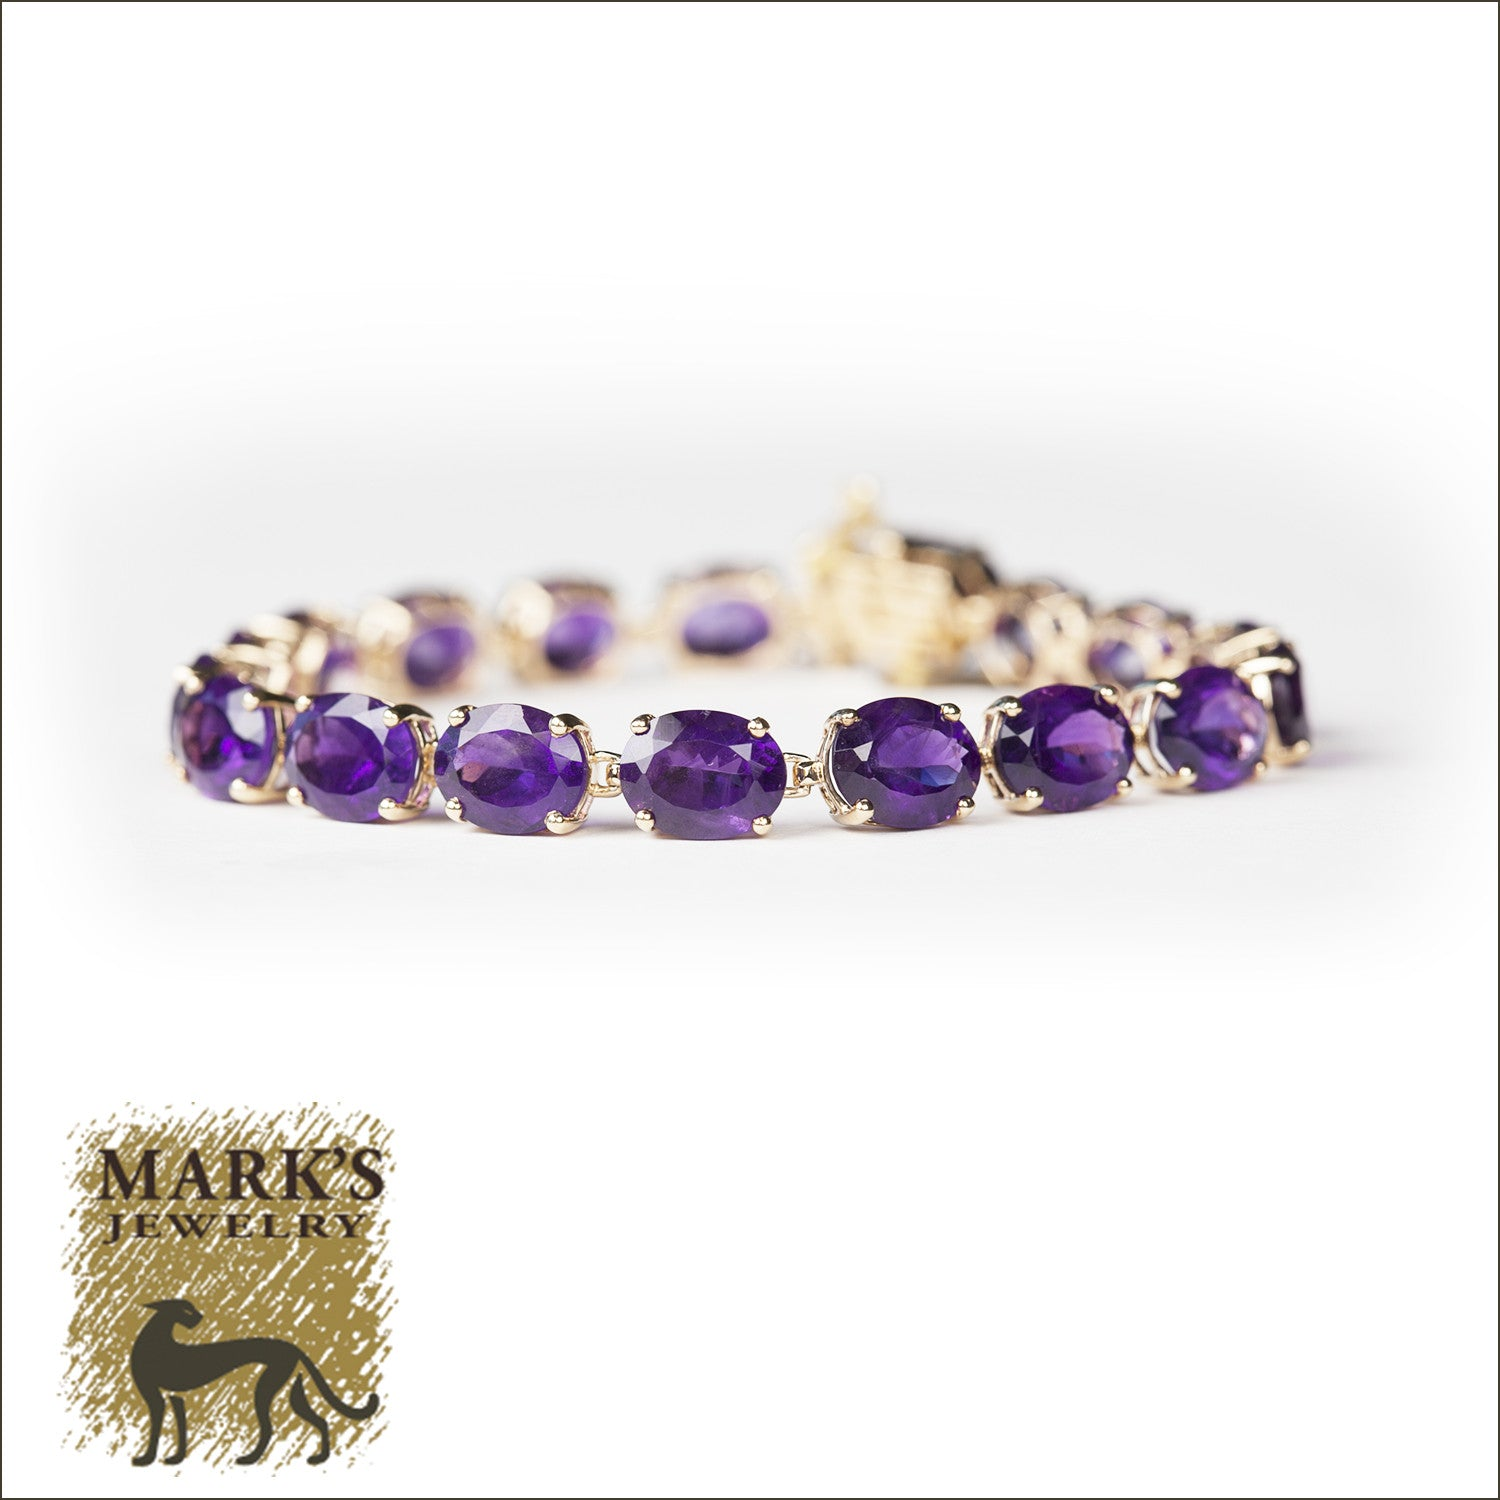 10k Yellow Gold Oval Amethyst Bracelet